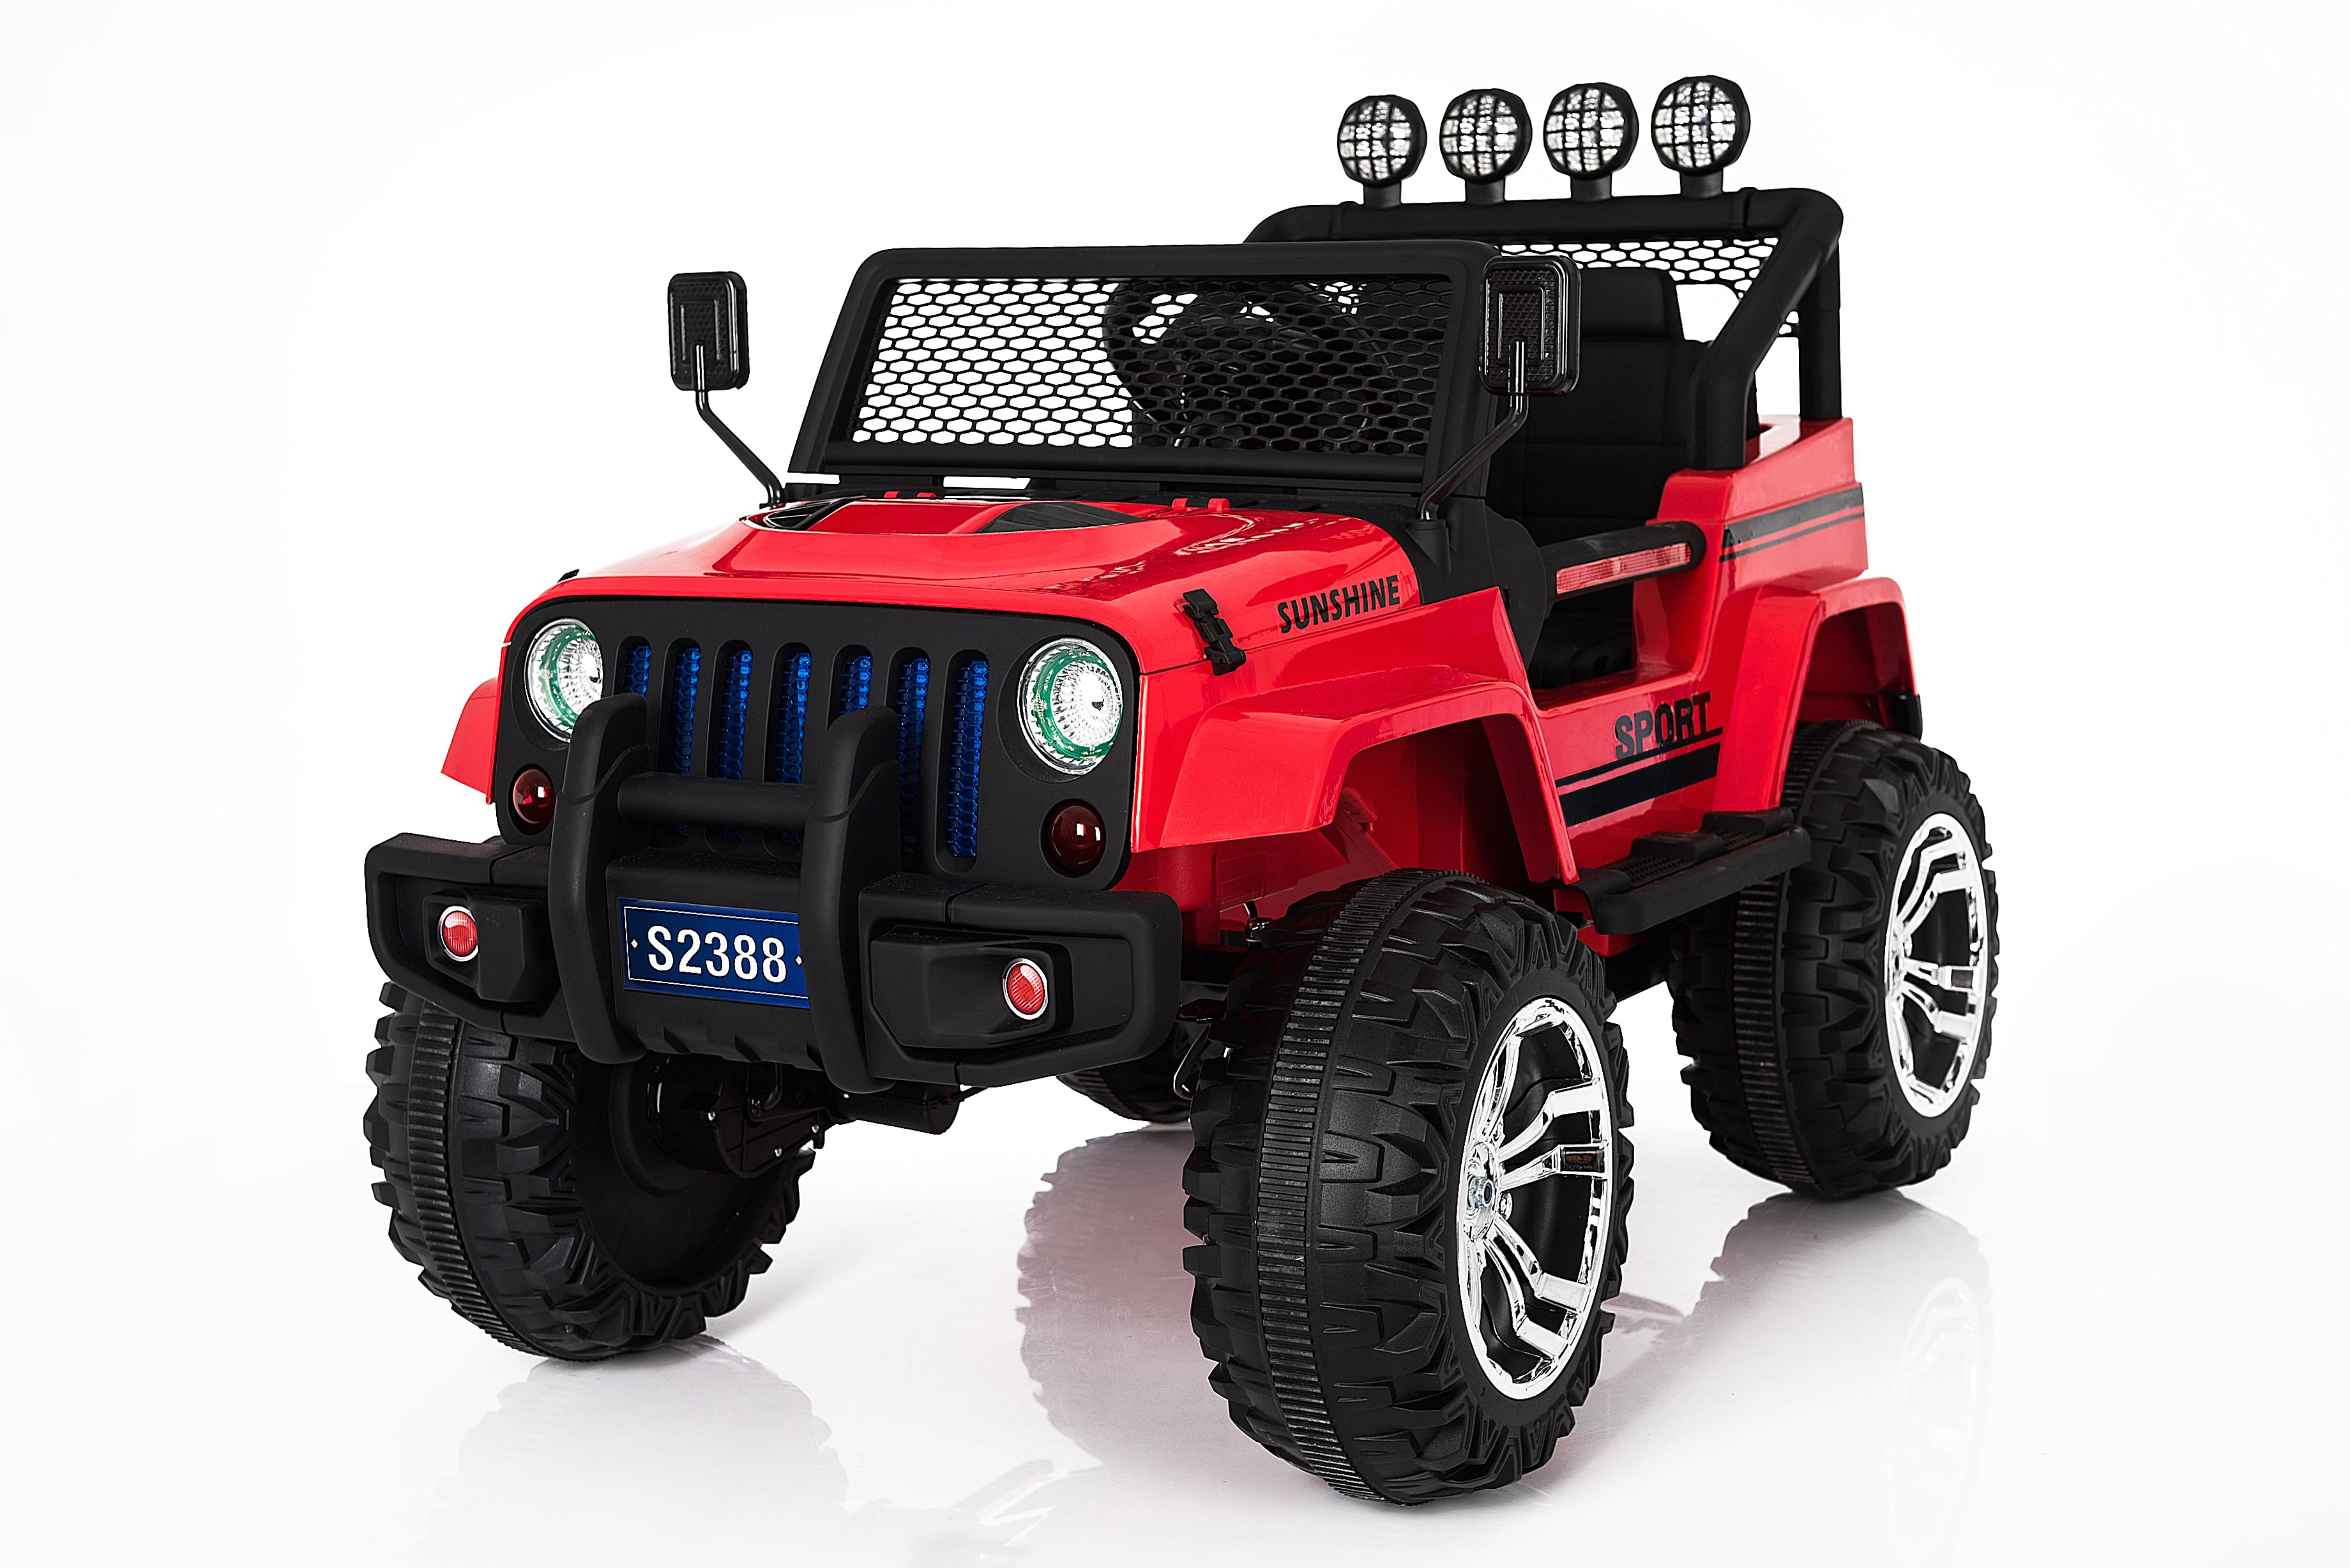 Ricco S2388 4x4 Kids Electric Ride On Car with Remote Control LED Lights and Music - RICCO® Toys